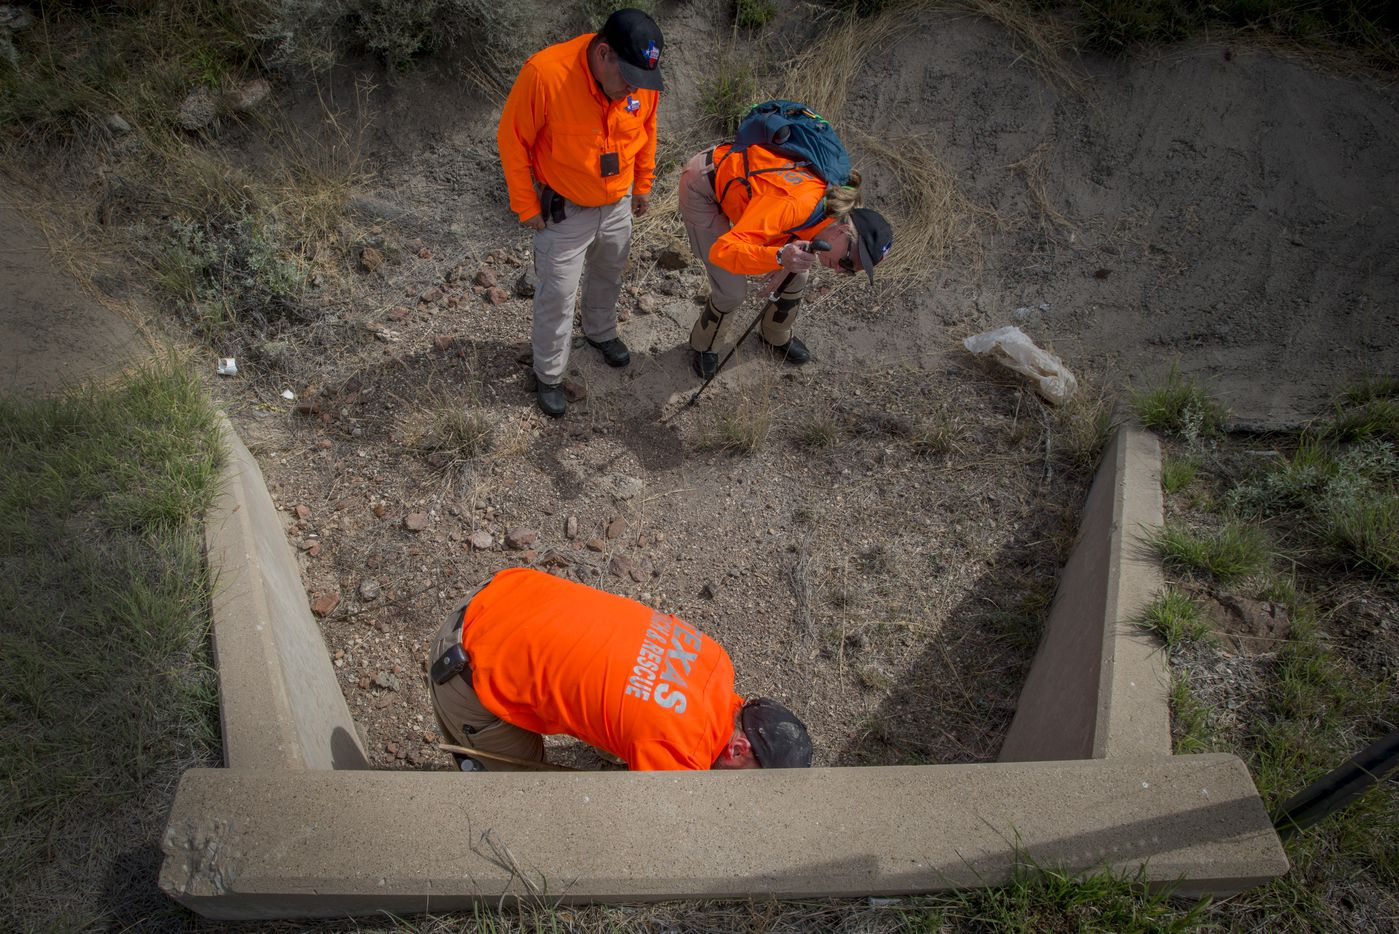 Members of Texas Search and Rescue checked out a culvert Saturday, Oct. 22, 2016 during their search for Zuzu Verk.